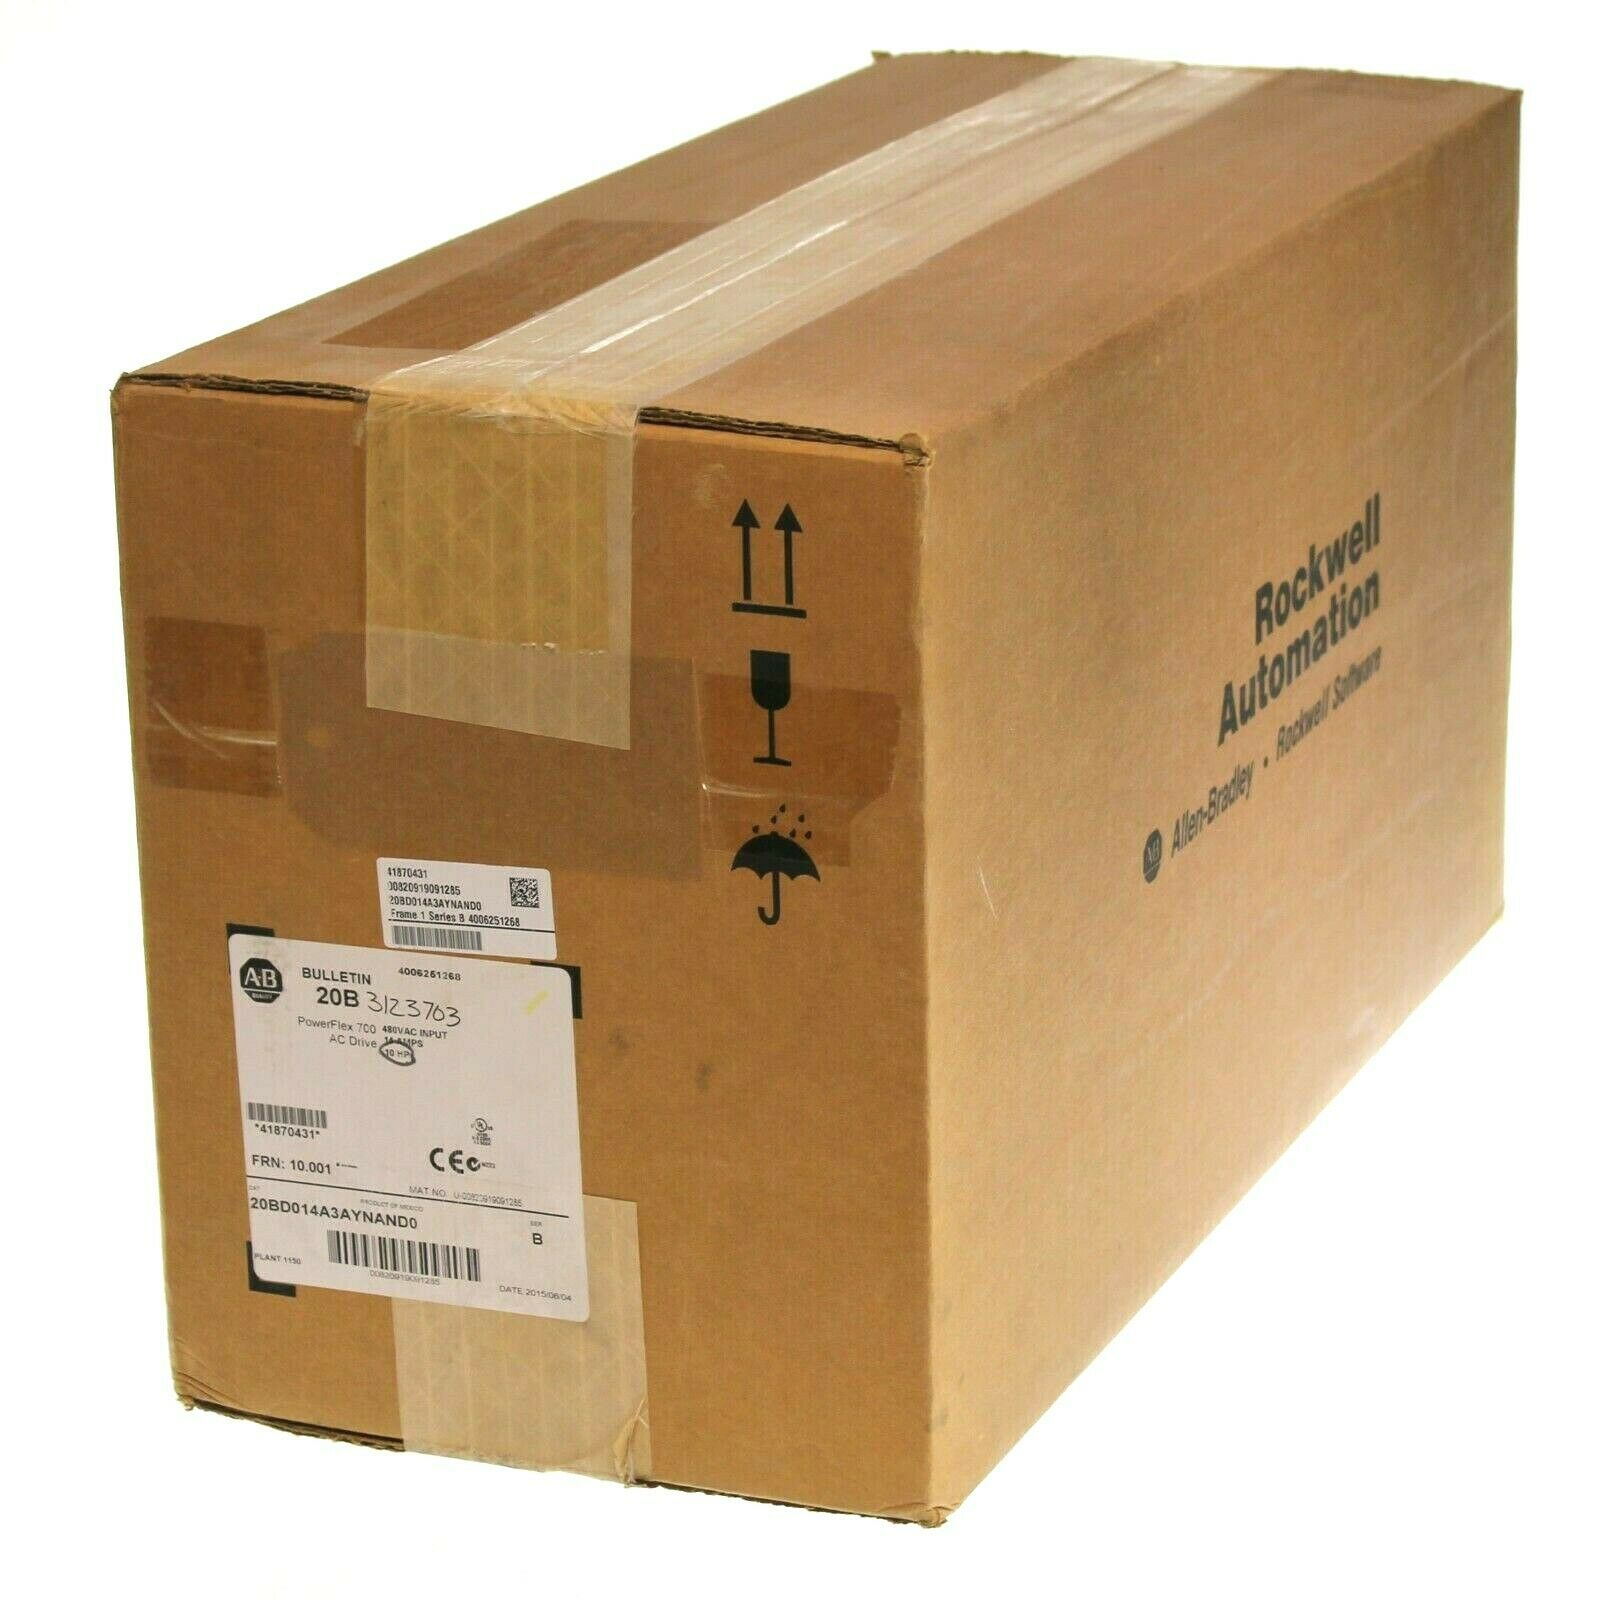 New Sealed Allen Bradley 20BD014A3AYNAND0 /B PowerFlex 700 AC Drive 10HP 14A